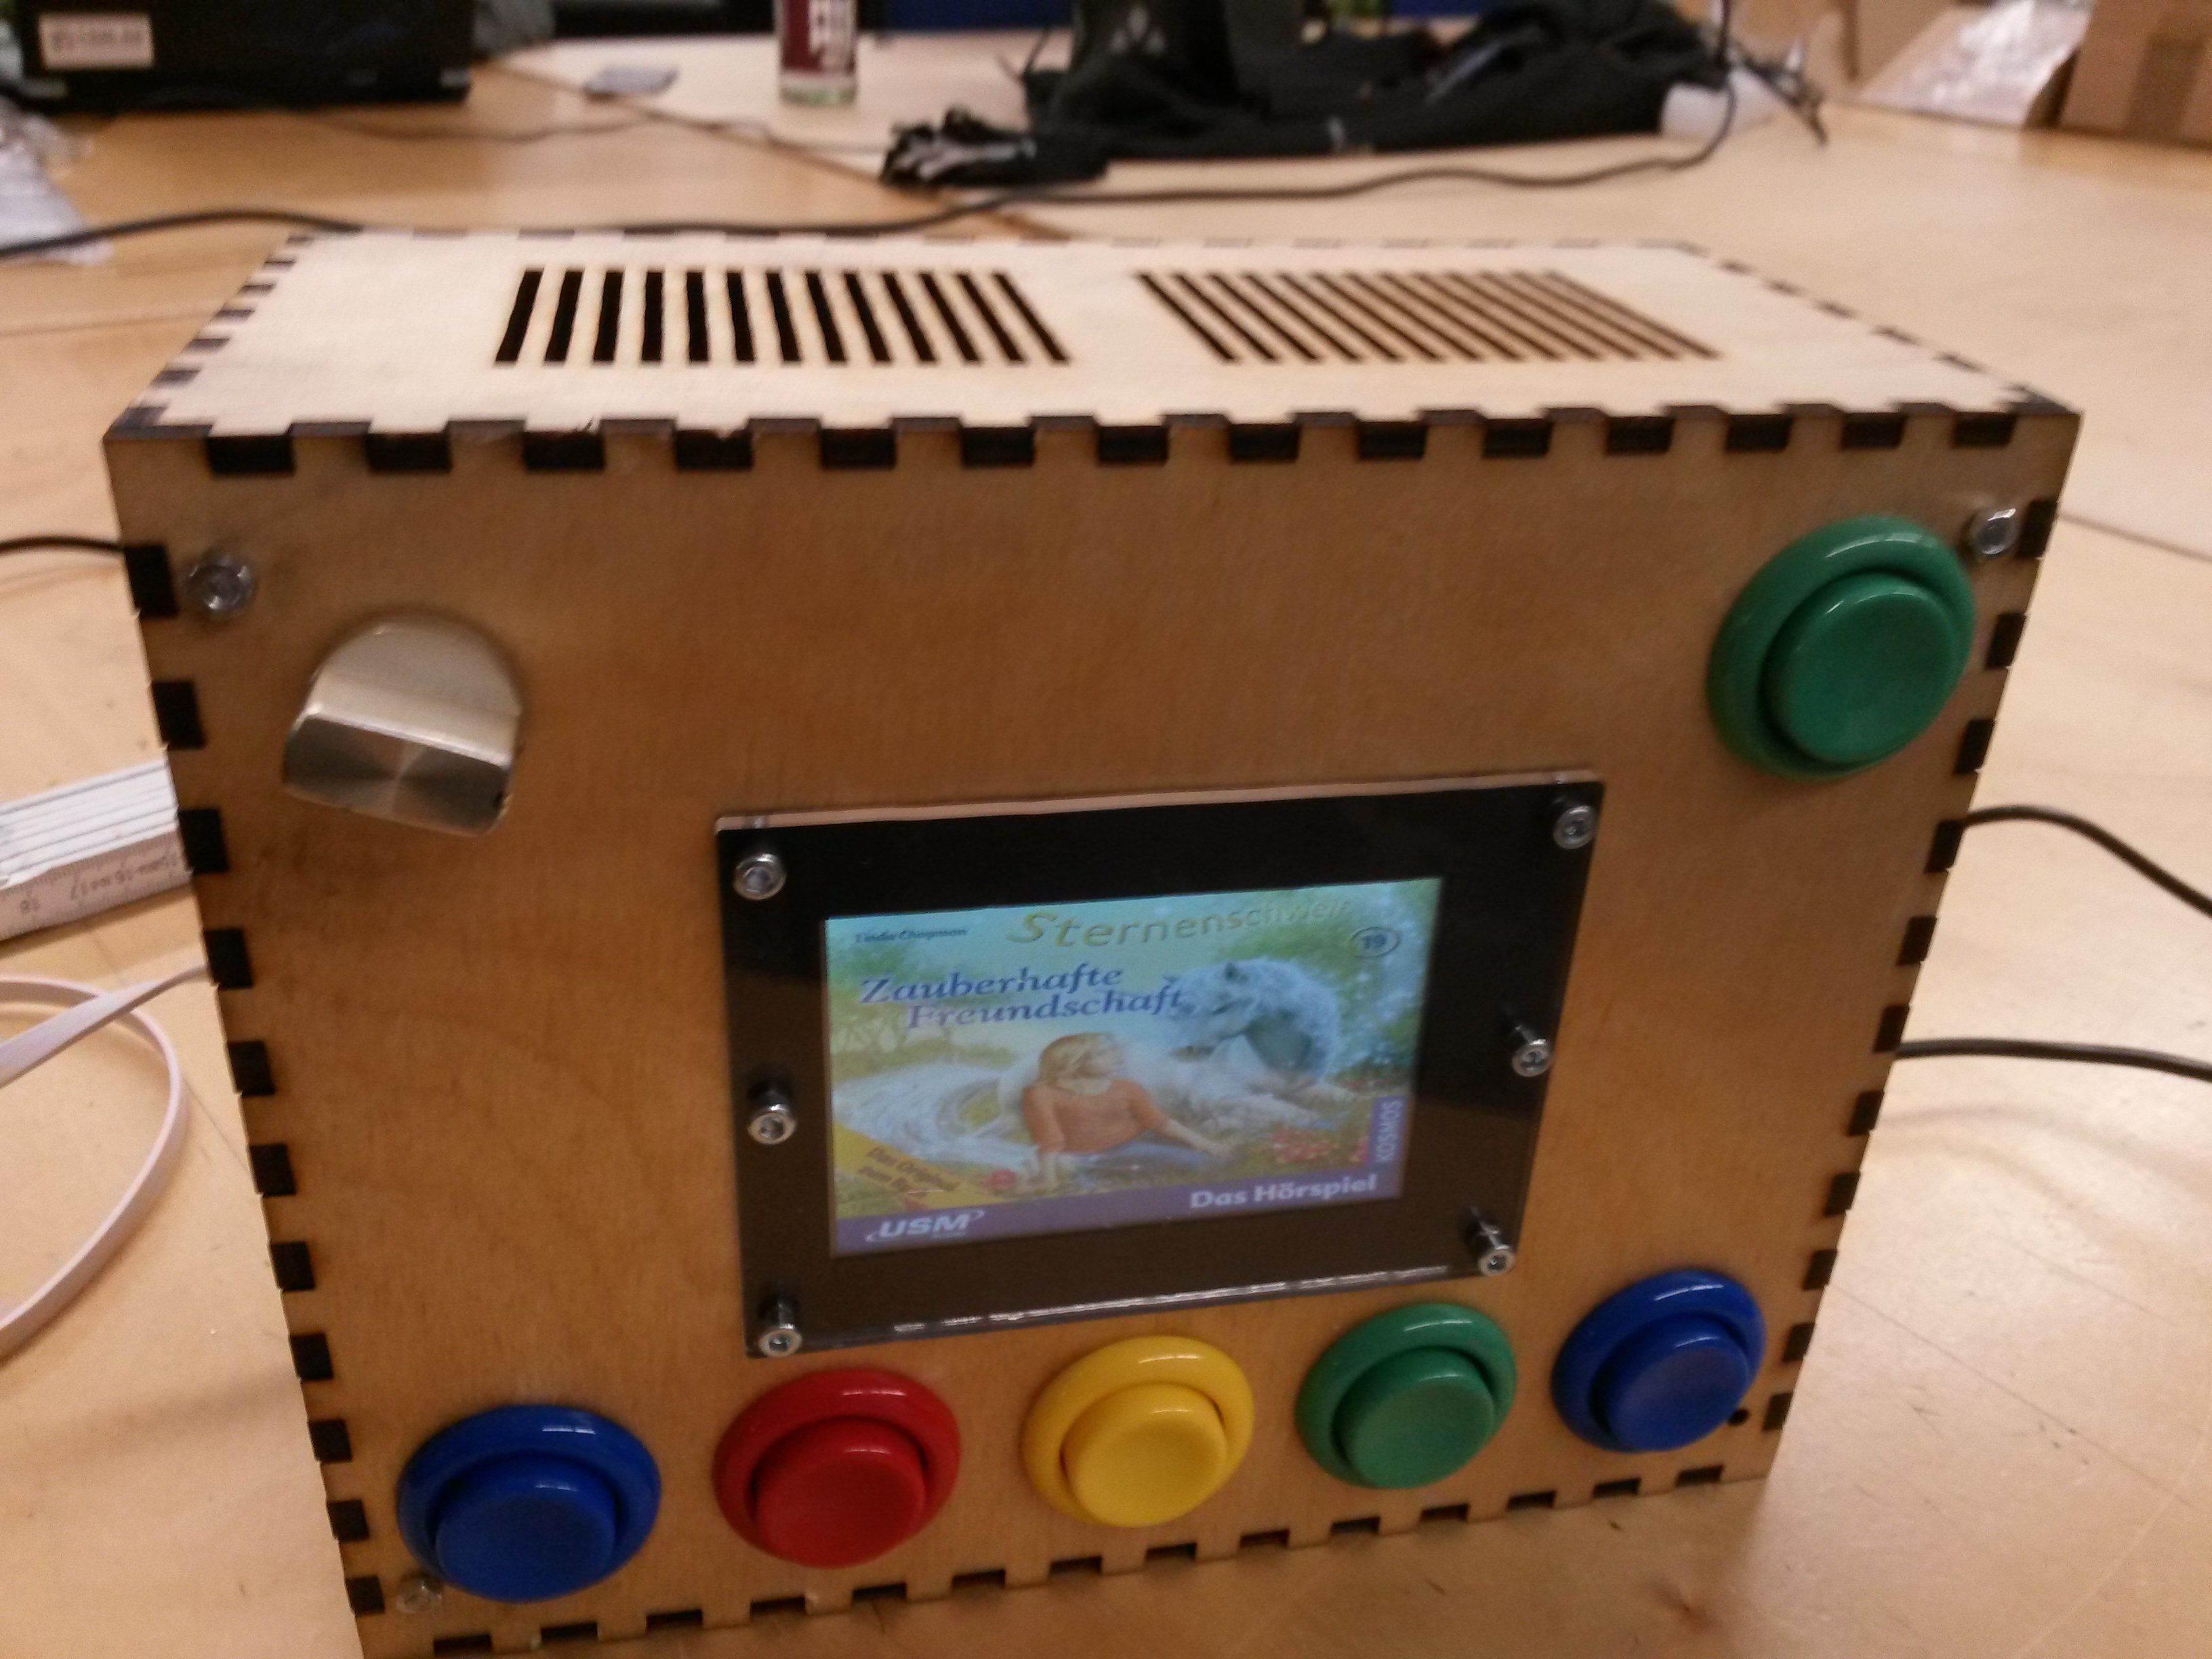 Picture of a lasercut wooden box with arcade buttons and a display. A media player for the little one